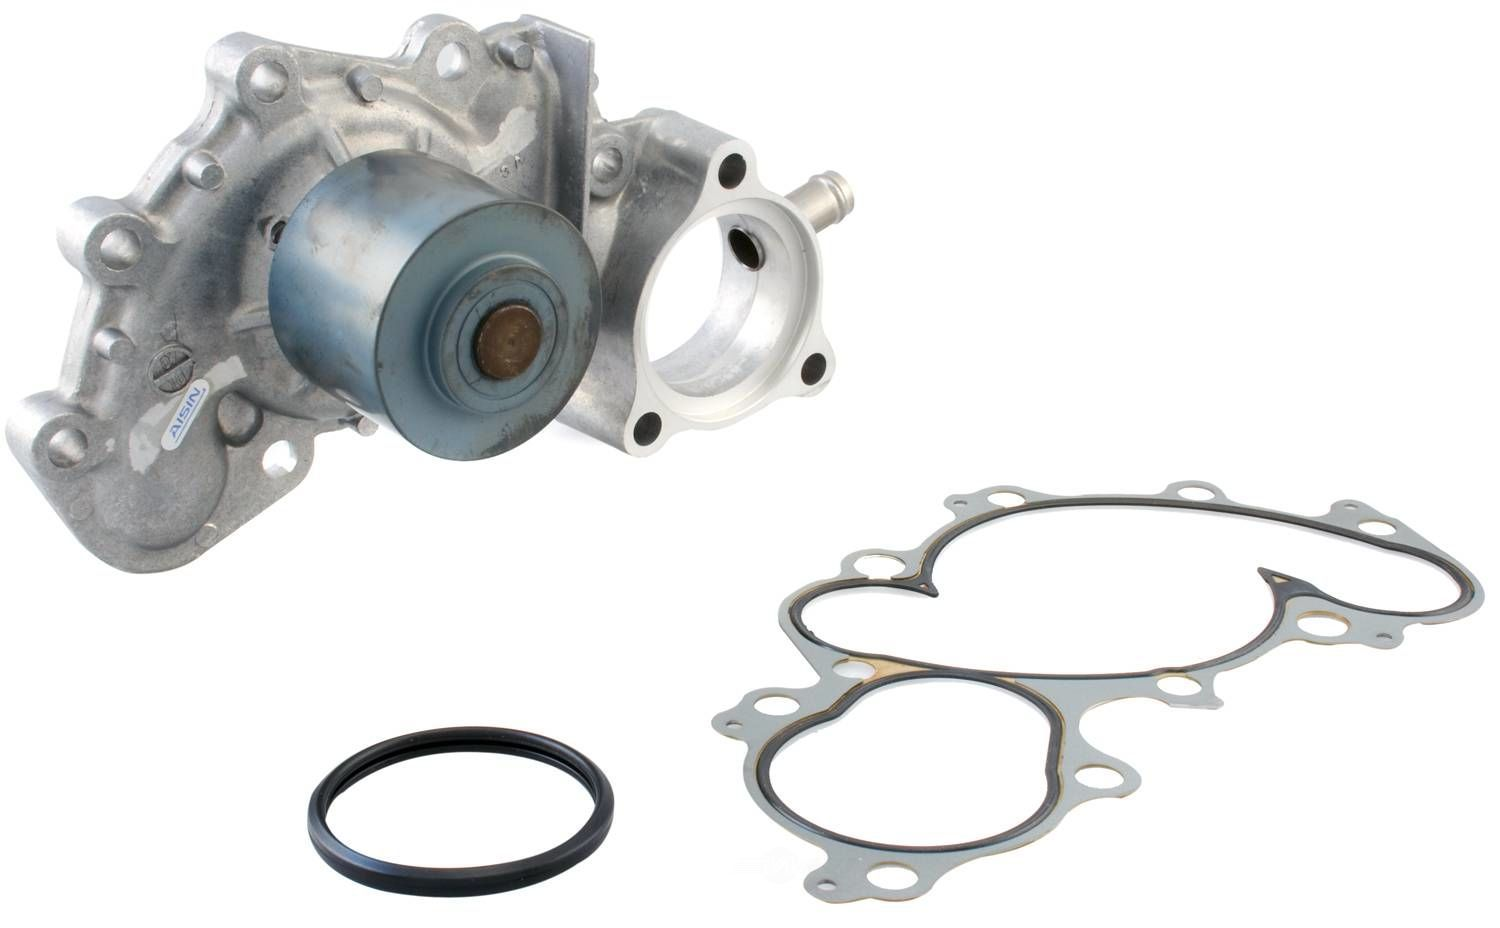 AISIN WORLD CORP. OF AMERICA - Engine Water Pump - AIS WPT-100